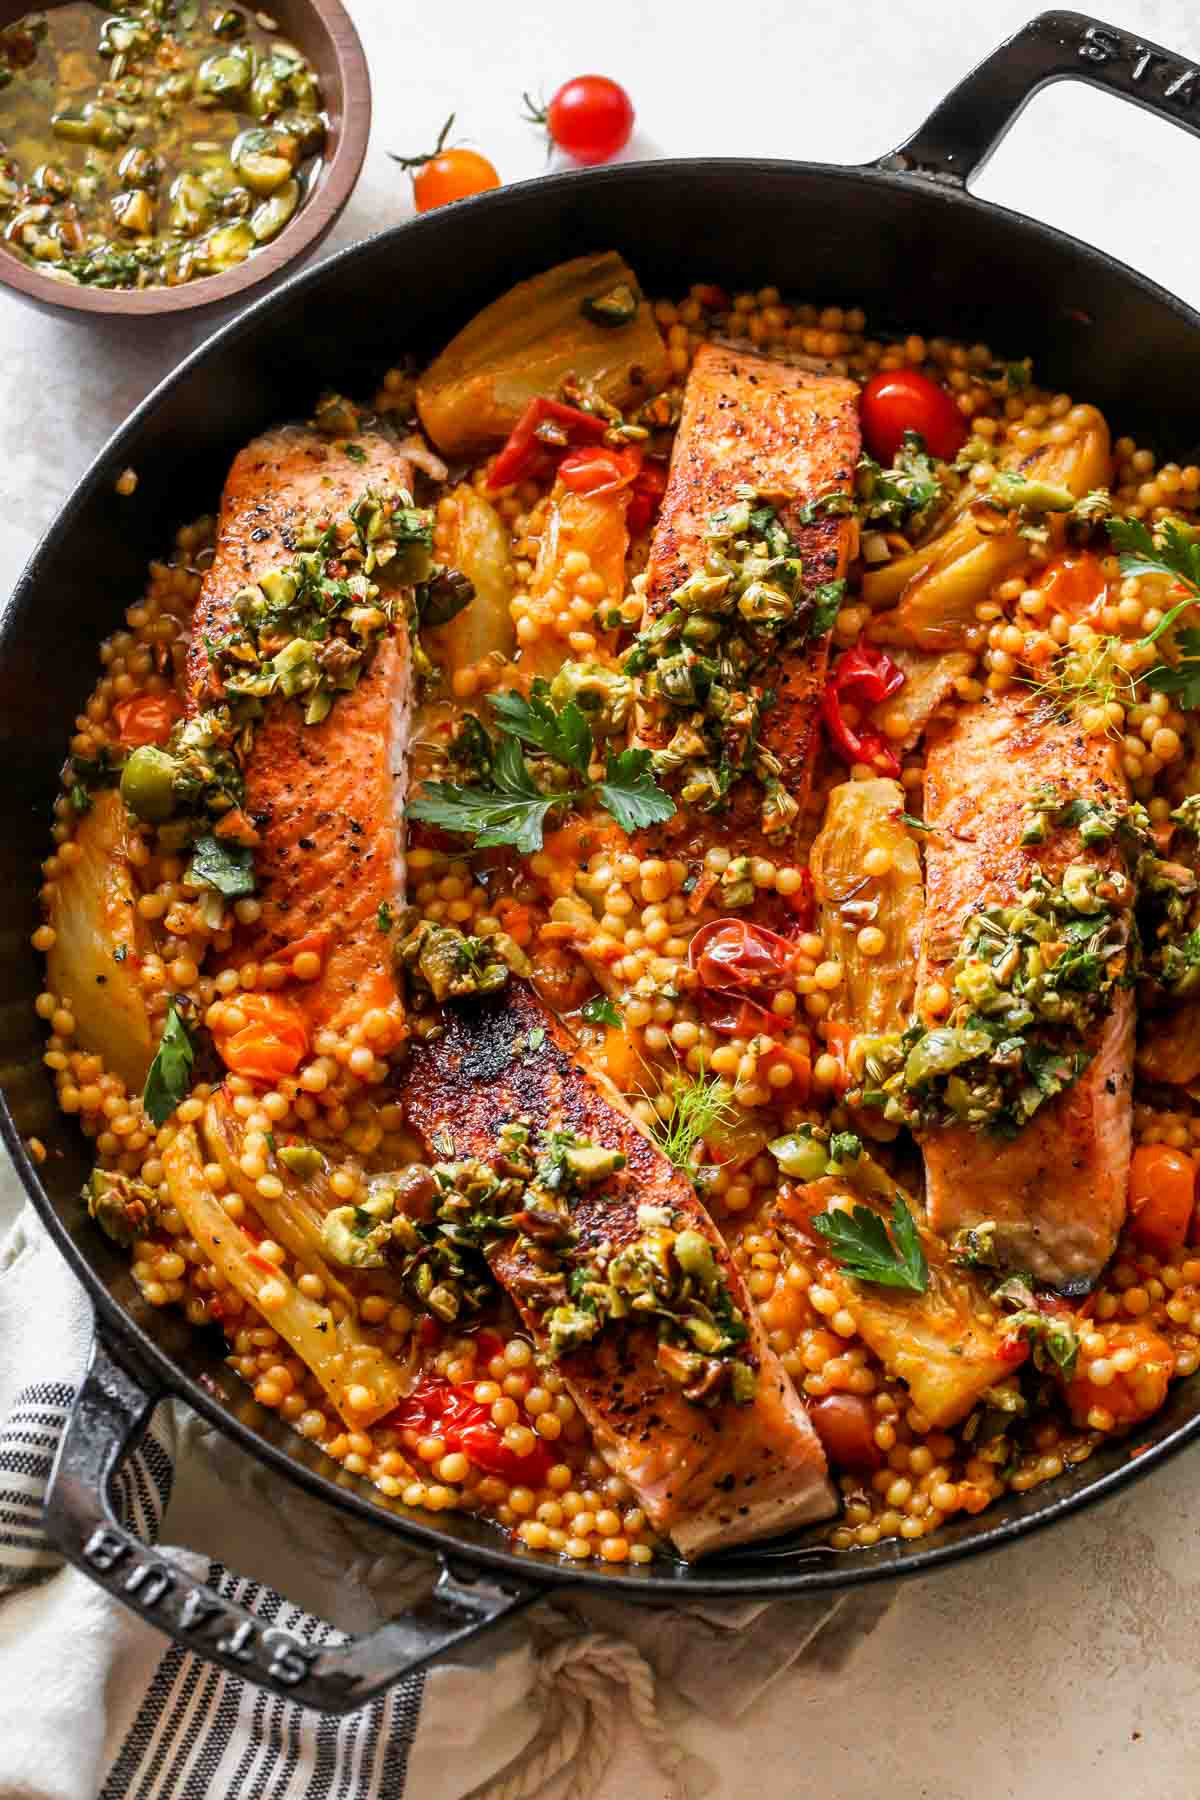 Salmon over couscous in a skillet topped with olive salsa